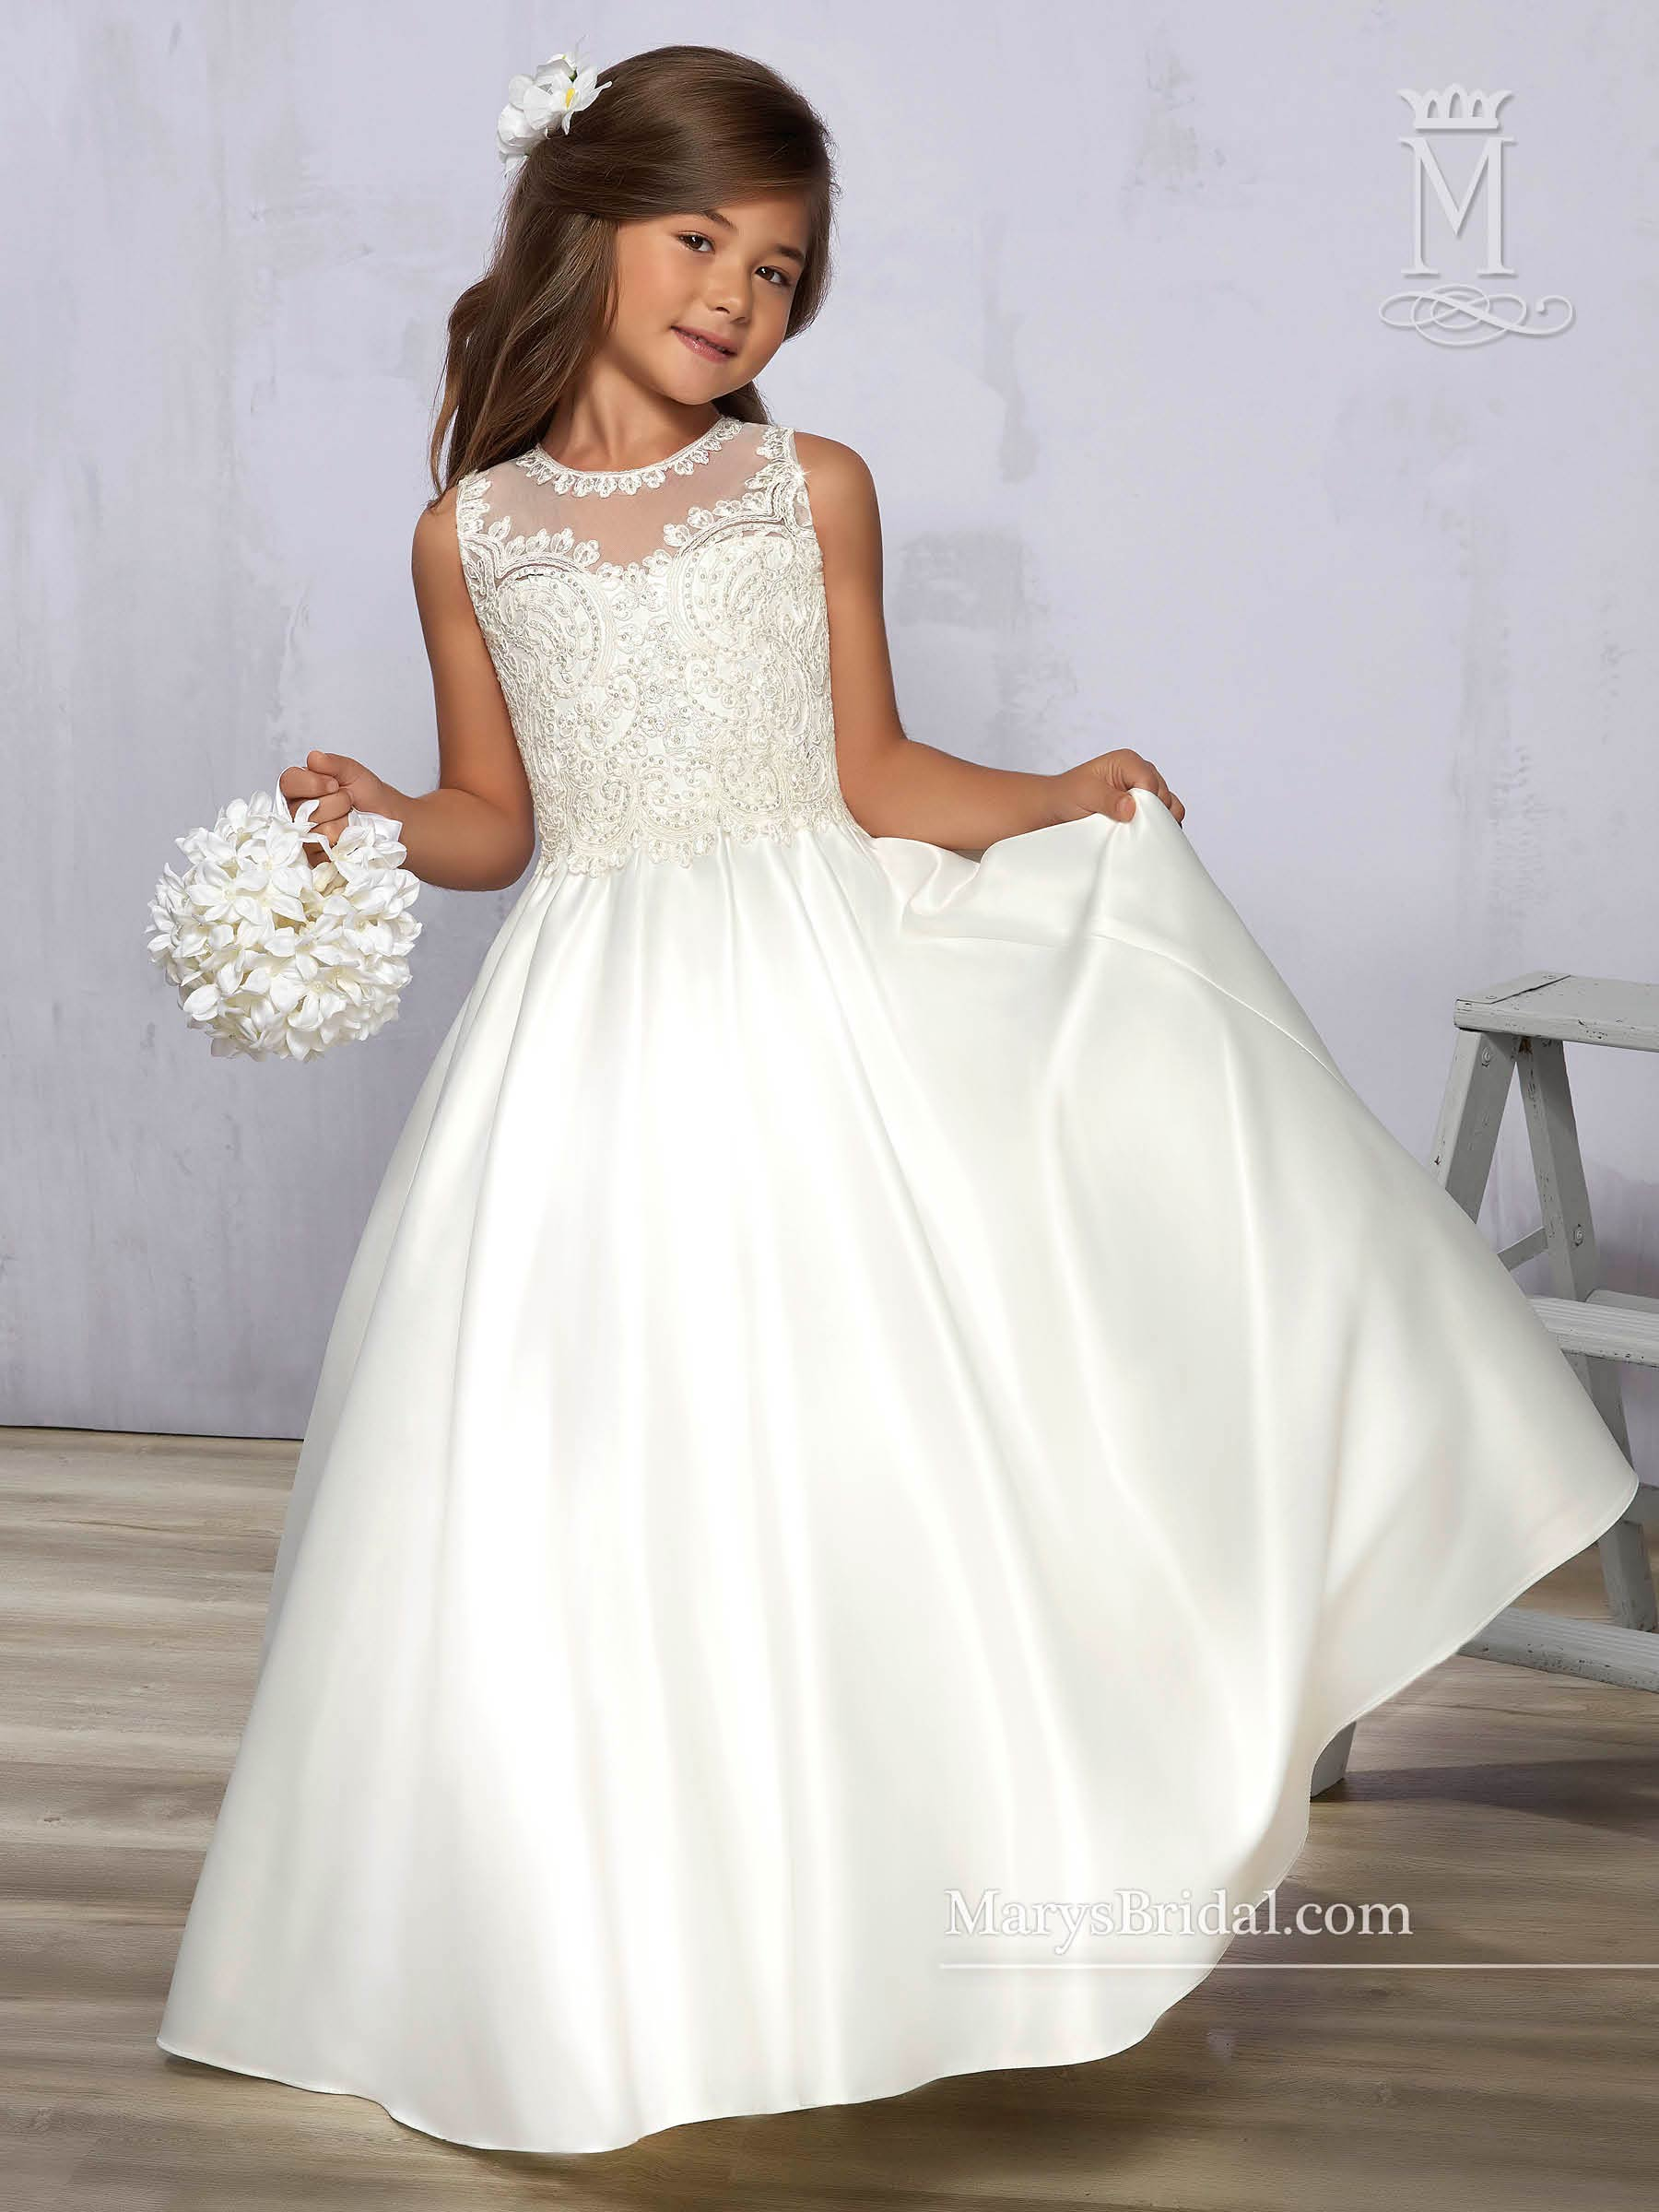 Angel Flower Girl Dresses Style F576 In Ivory White Color